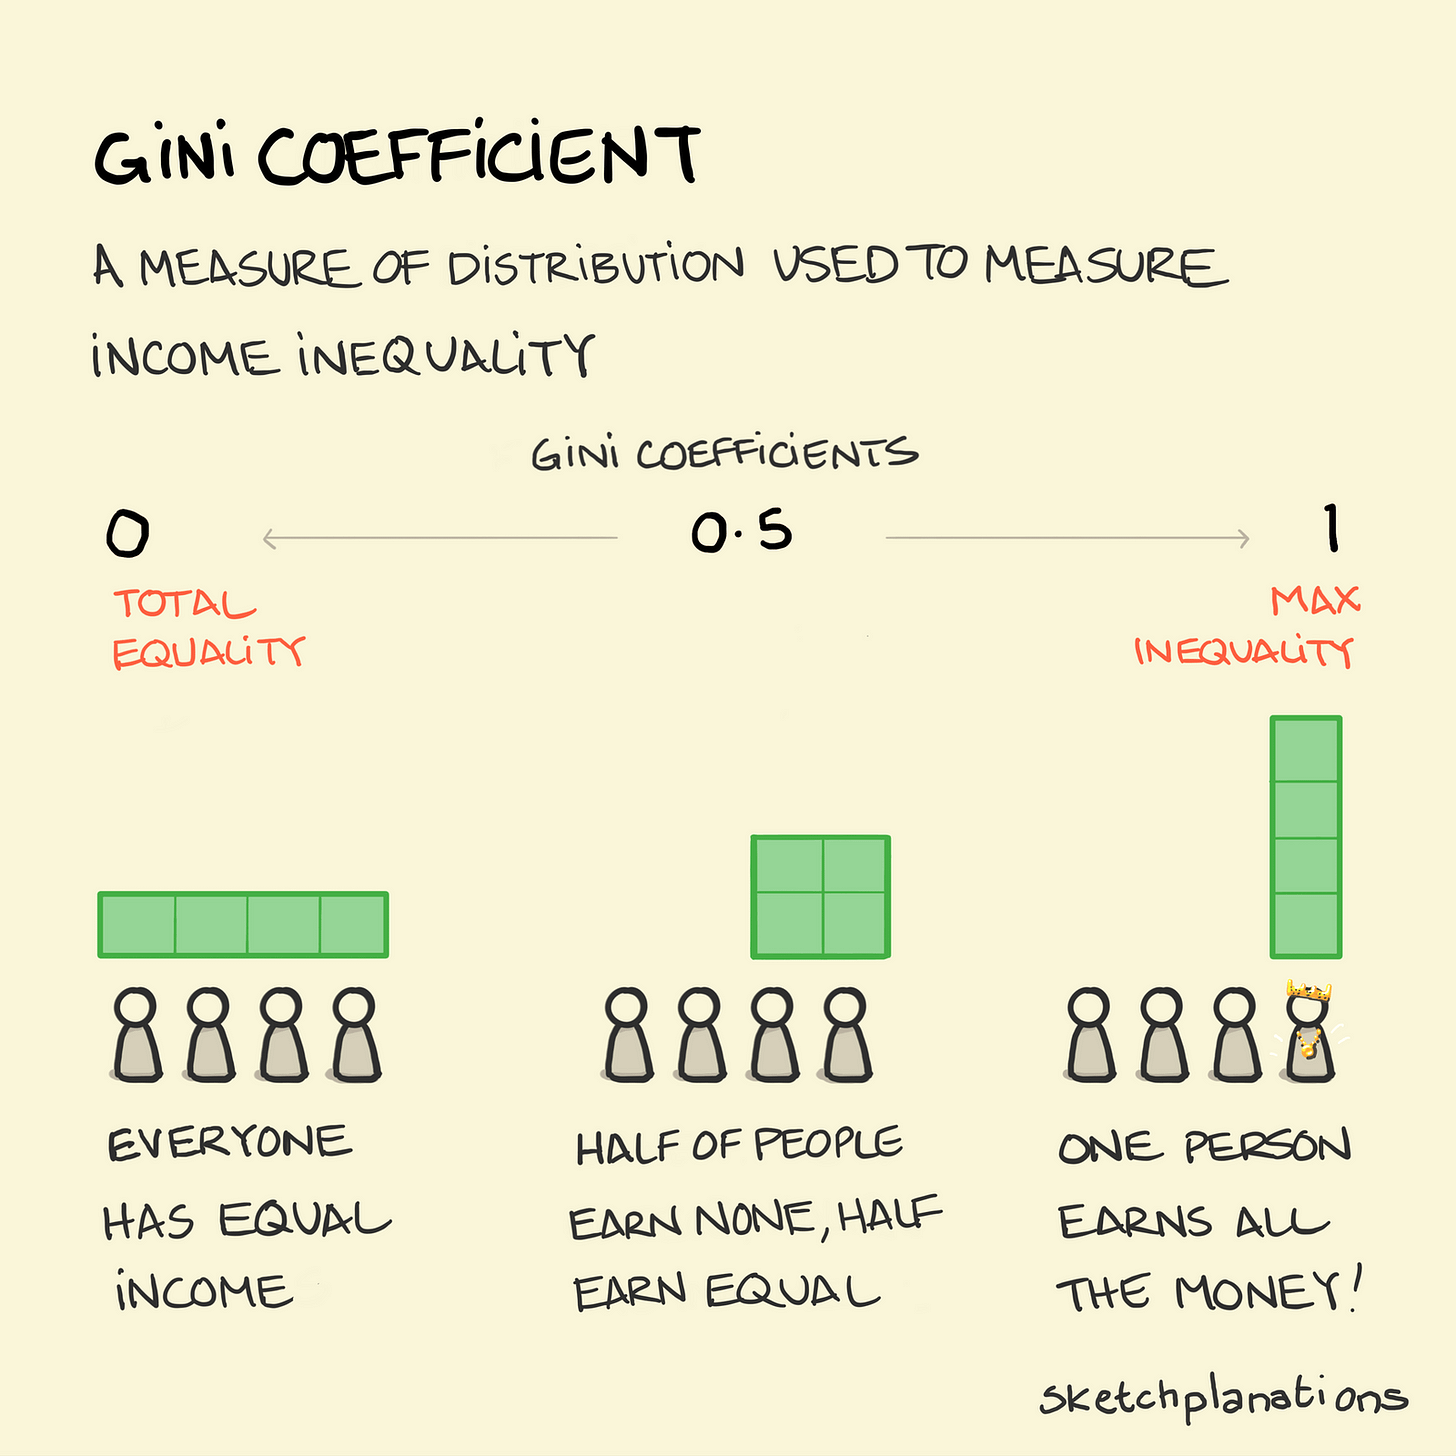 The Gini coefficient - Sketchplanations